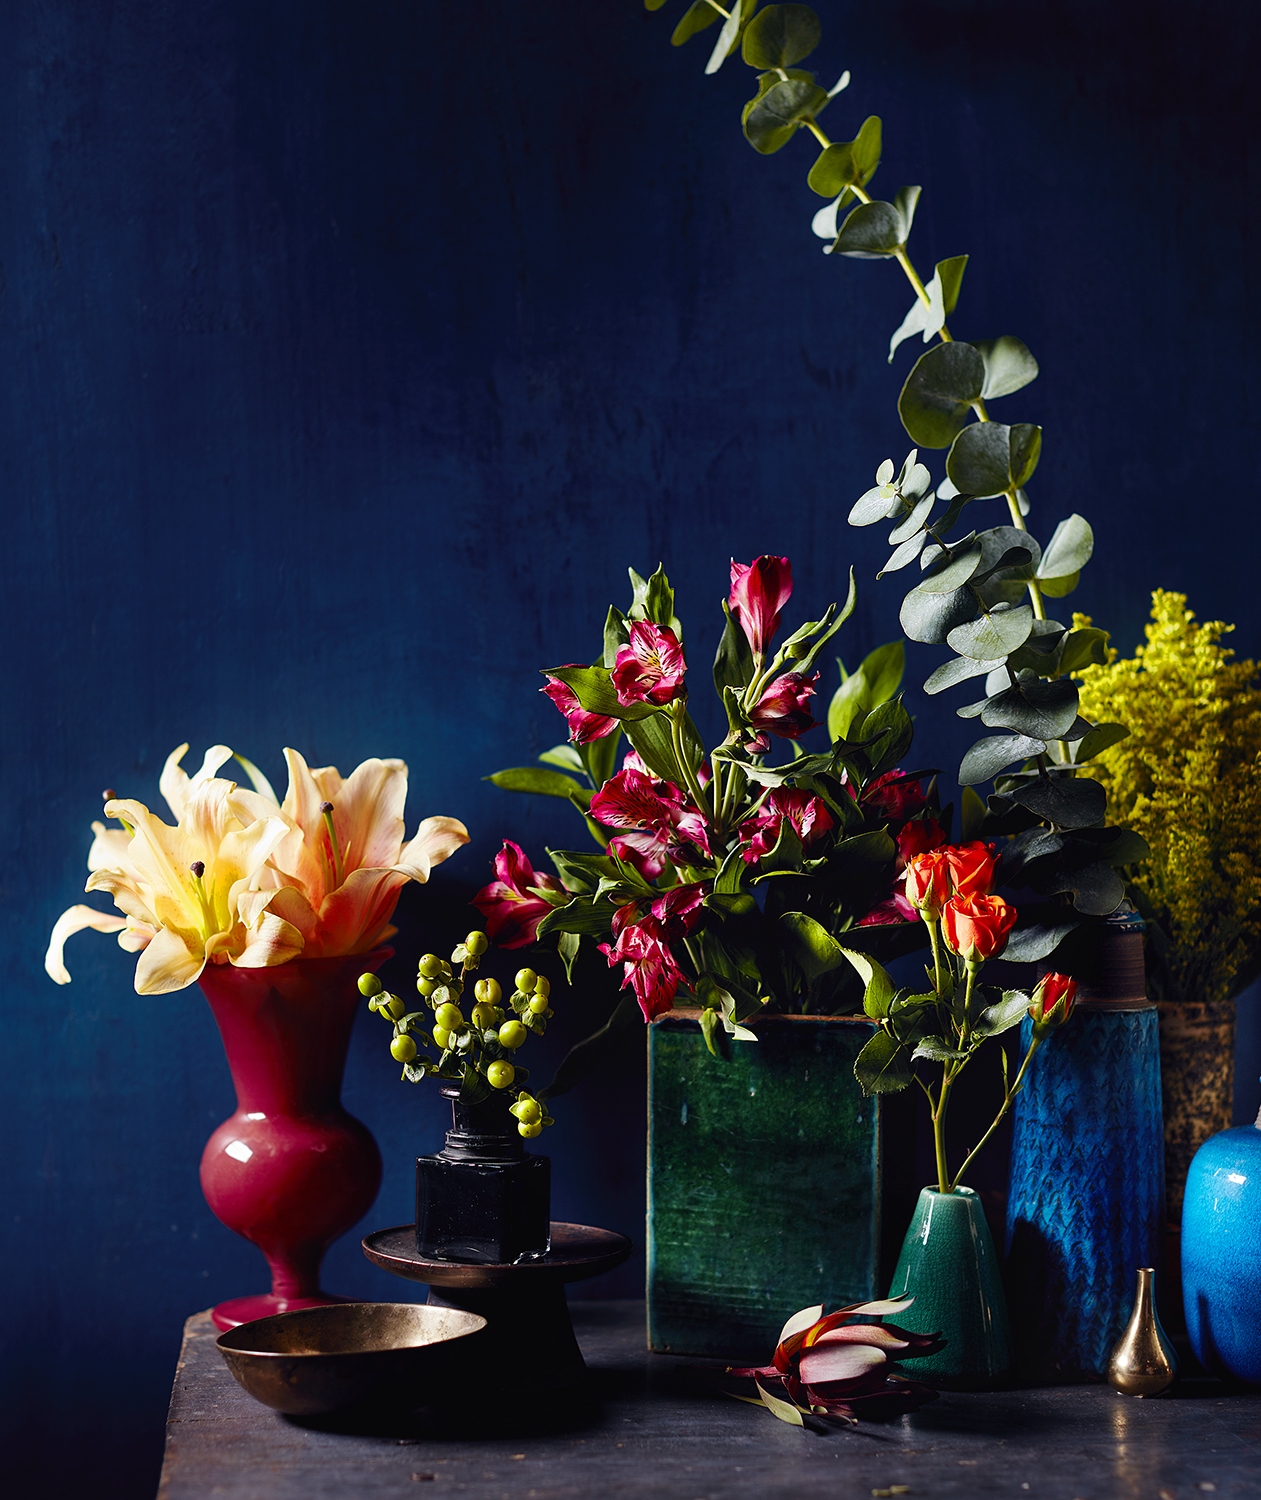 Deconstructed flower bouquets in multiple vases